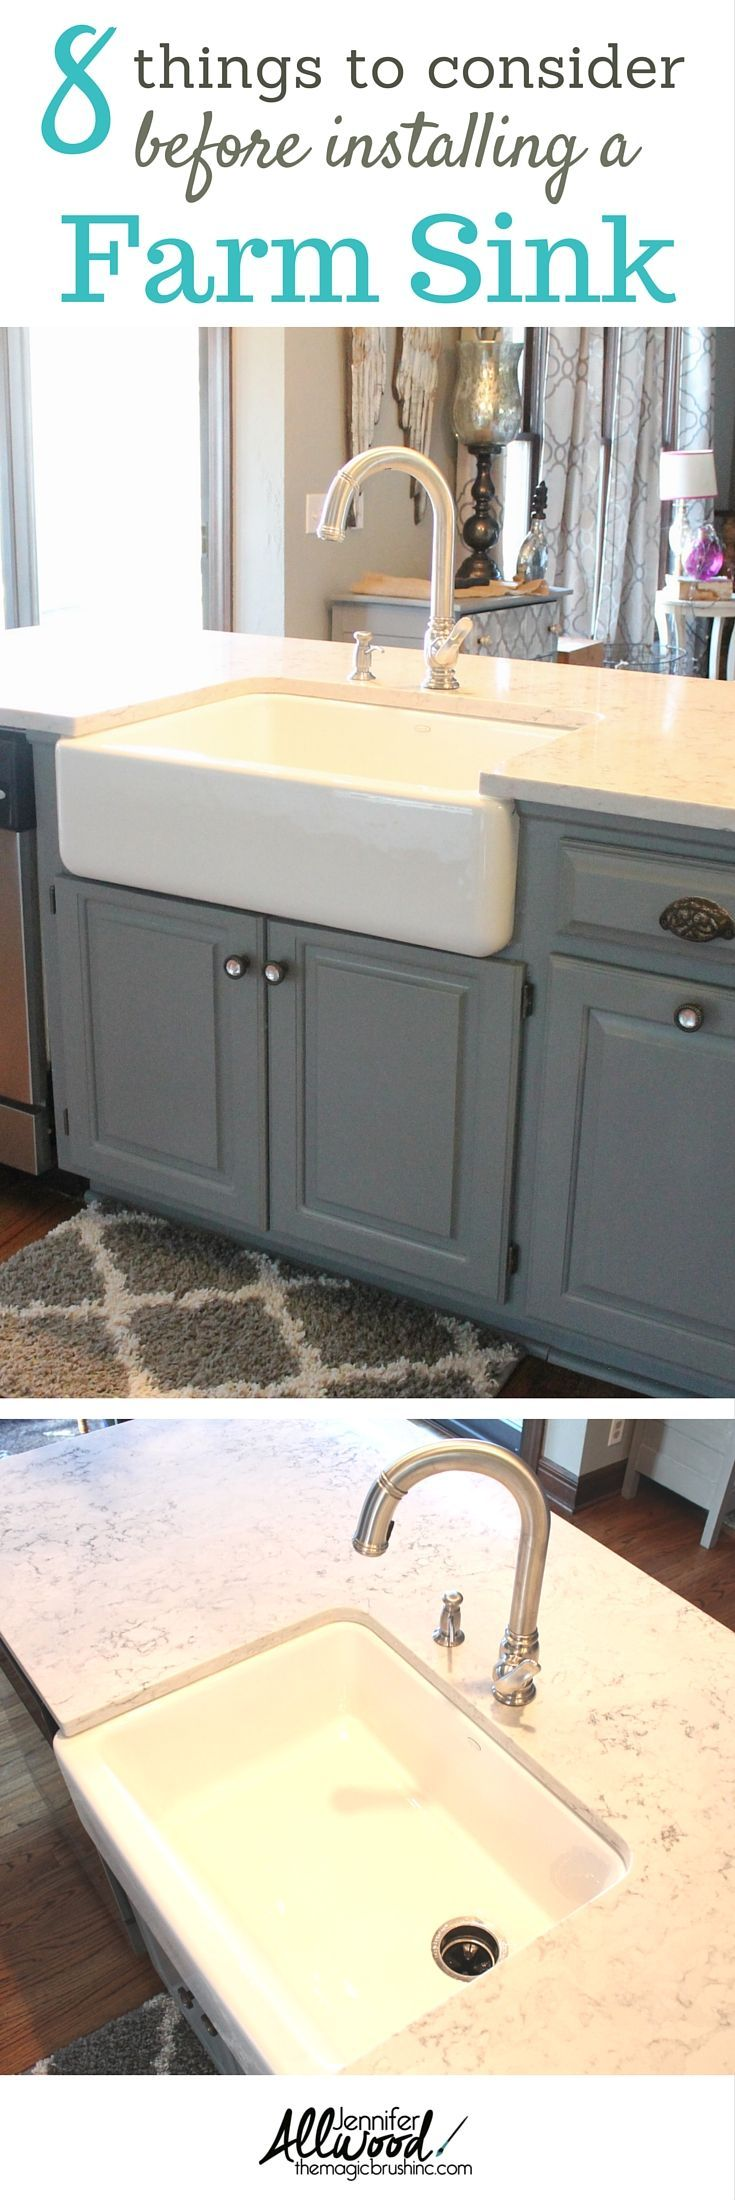 Farmhouse sink tips for your kitchen installation We